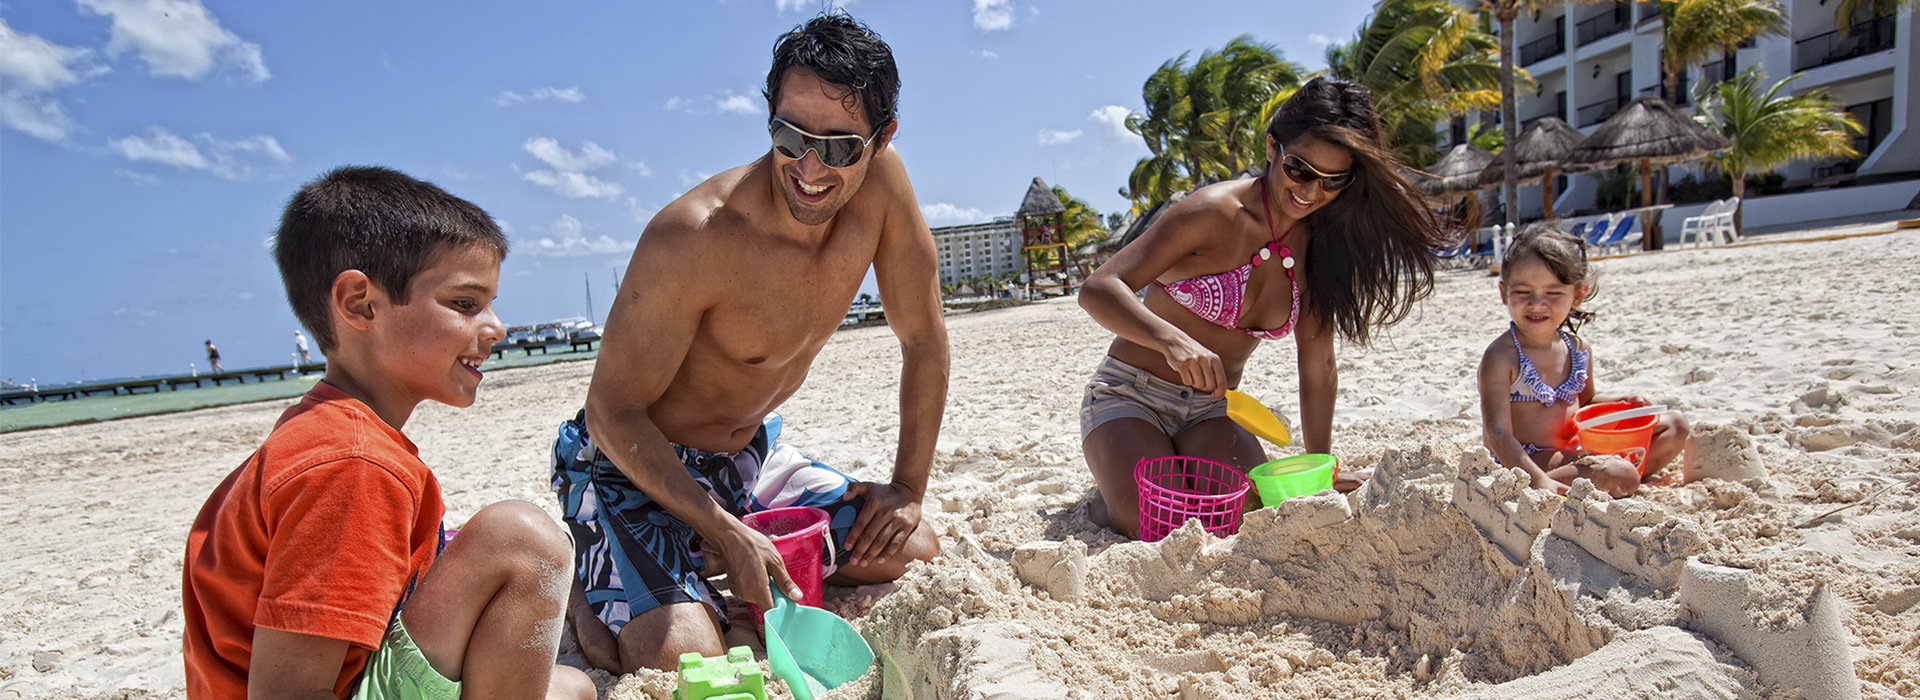 family activities in Cancun beach